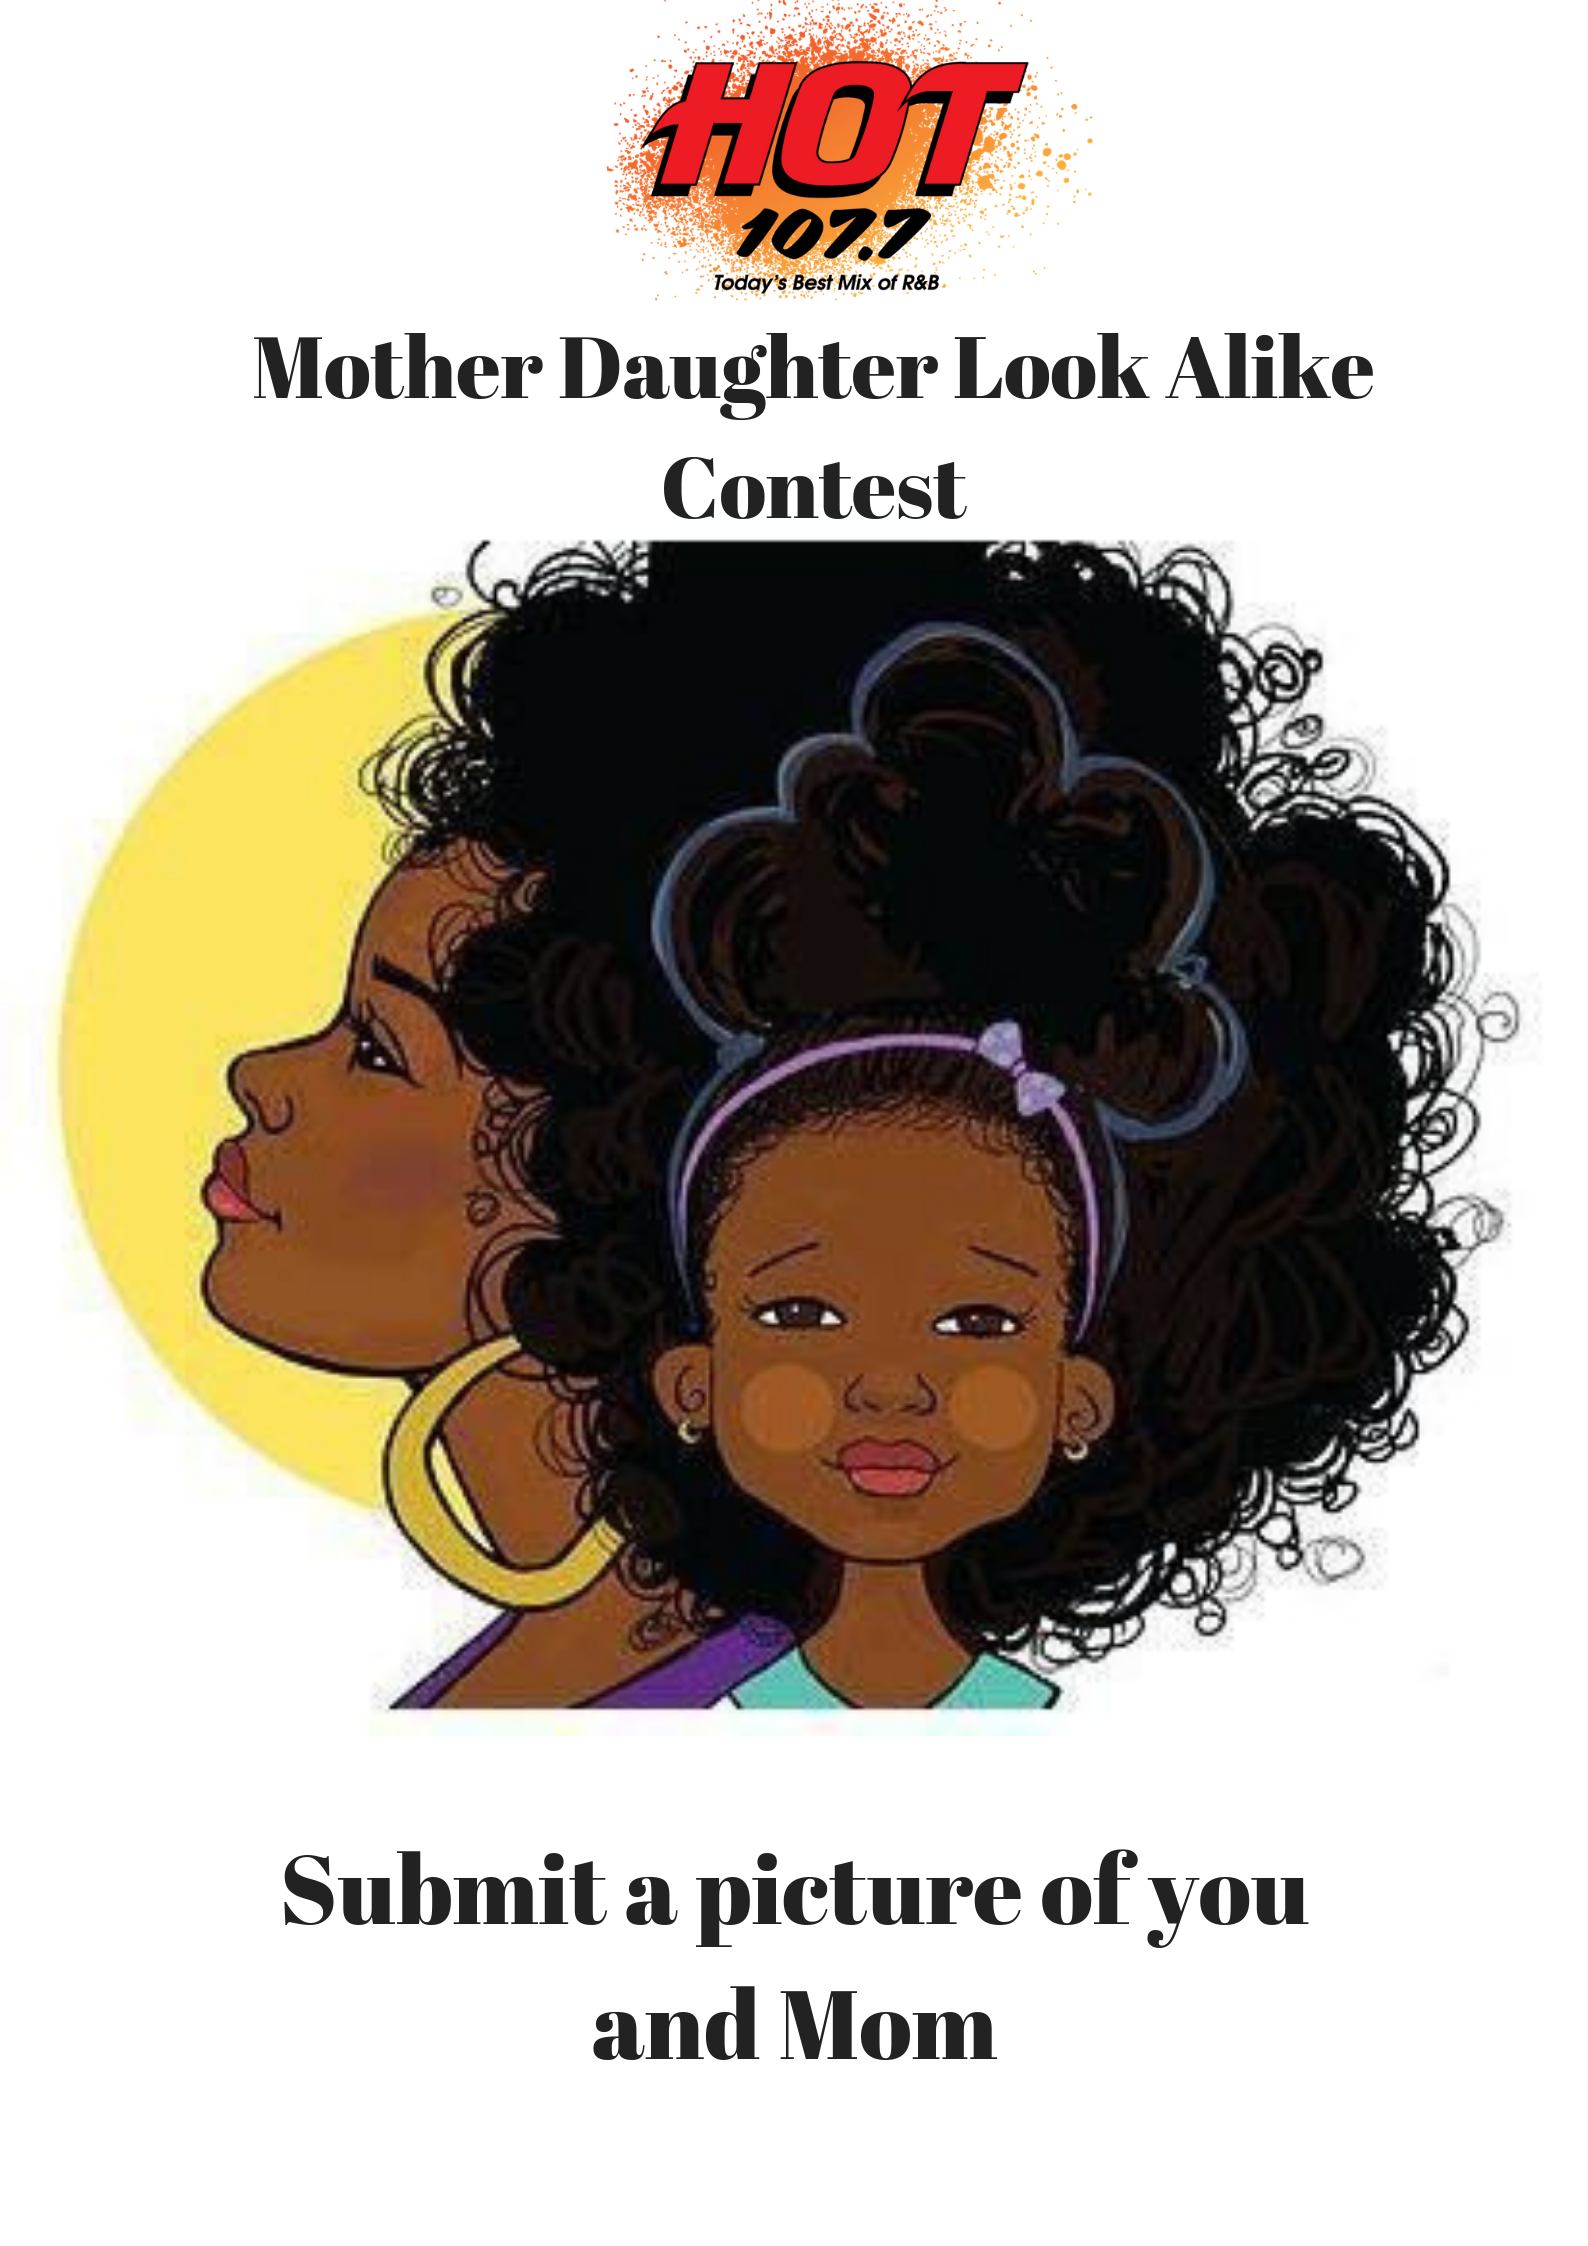 Mother Daughter Look Alike Contest